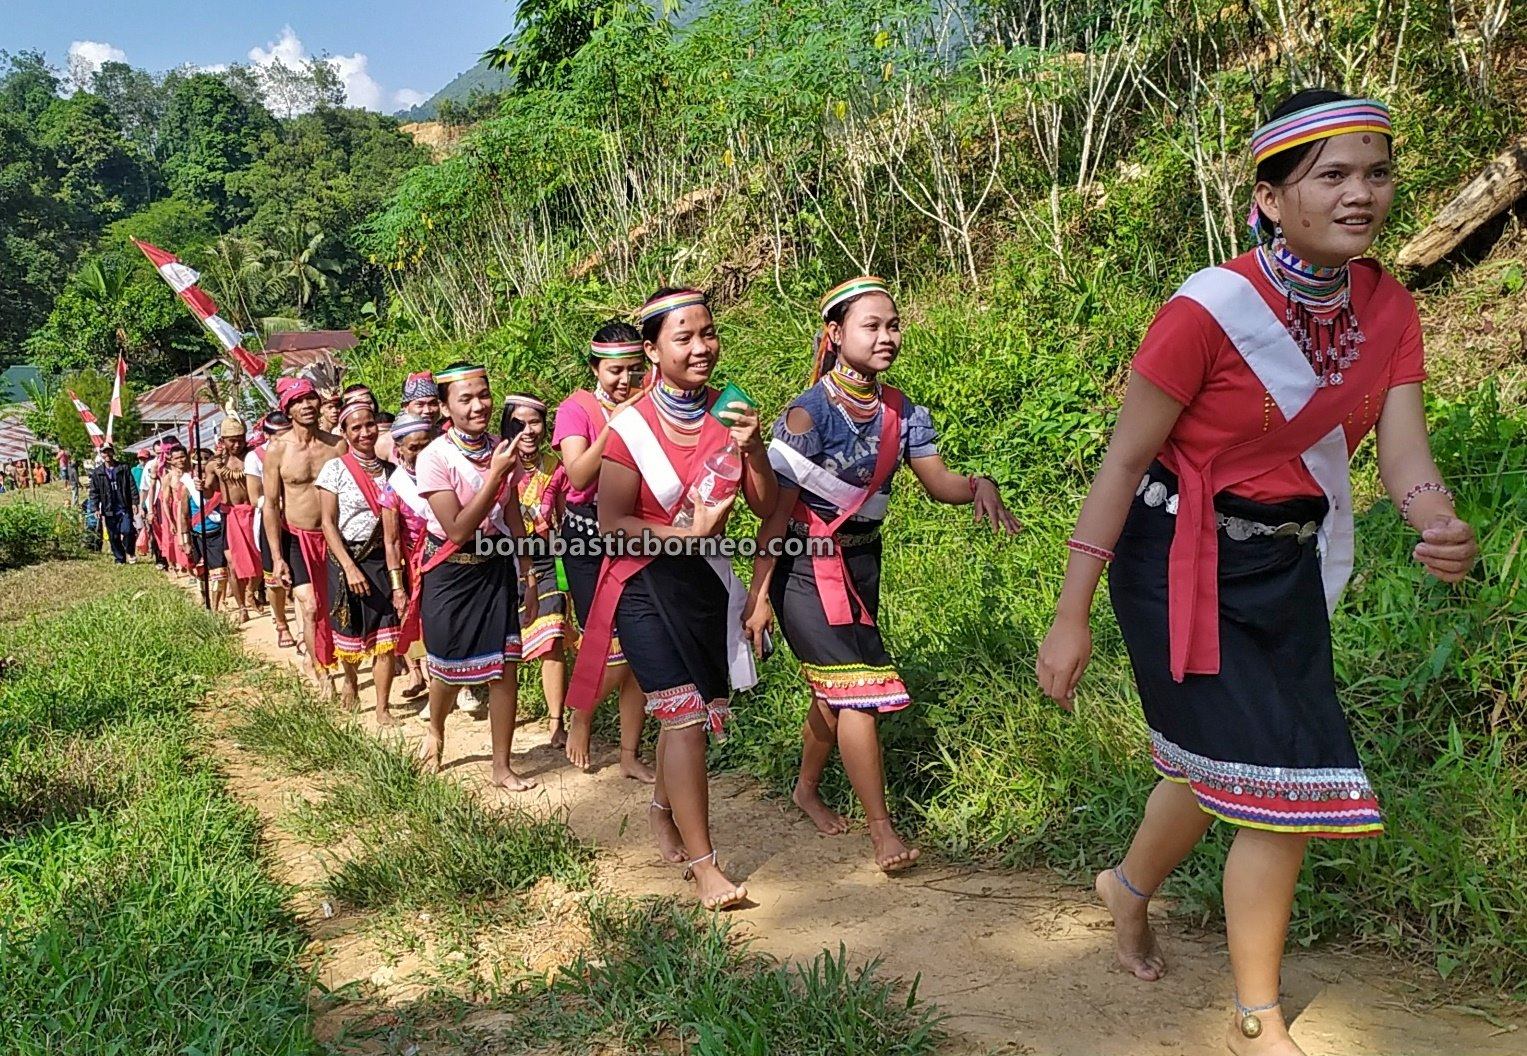 harvest festival, Sungkung Anep, indigenous, culture, Indonesia, West Kalimantan, Siding, native, tribe, village, tourist attraction, travel guide, Cross Border, 穿越婆罗洲丰收节, 印尼西加里曼丹, 原住民比达友族部落